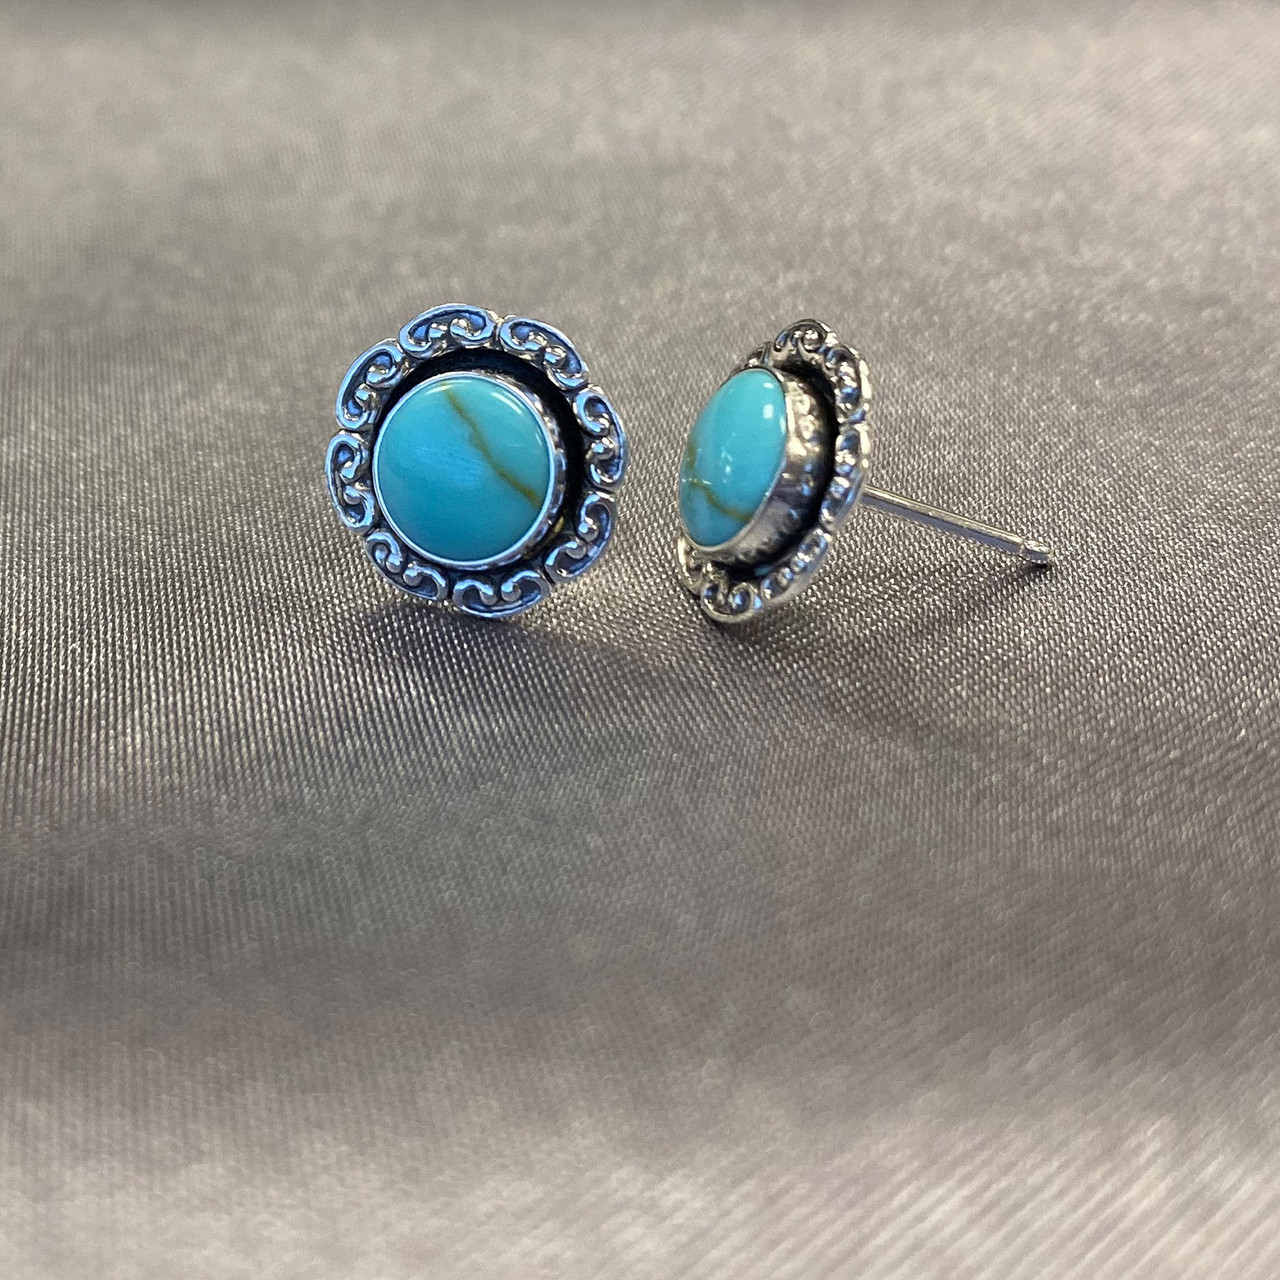 925 Sterling Silver 10mm Round Simulated Turquoise Gemstone Post Back Stud Earrings